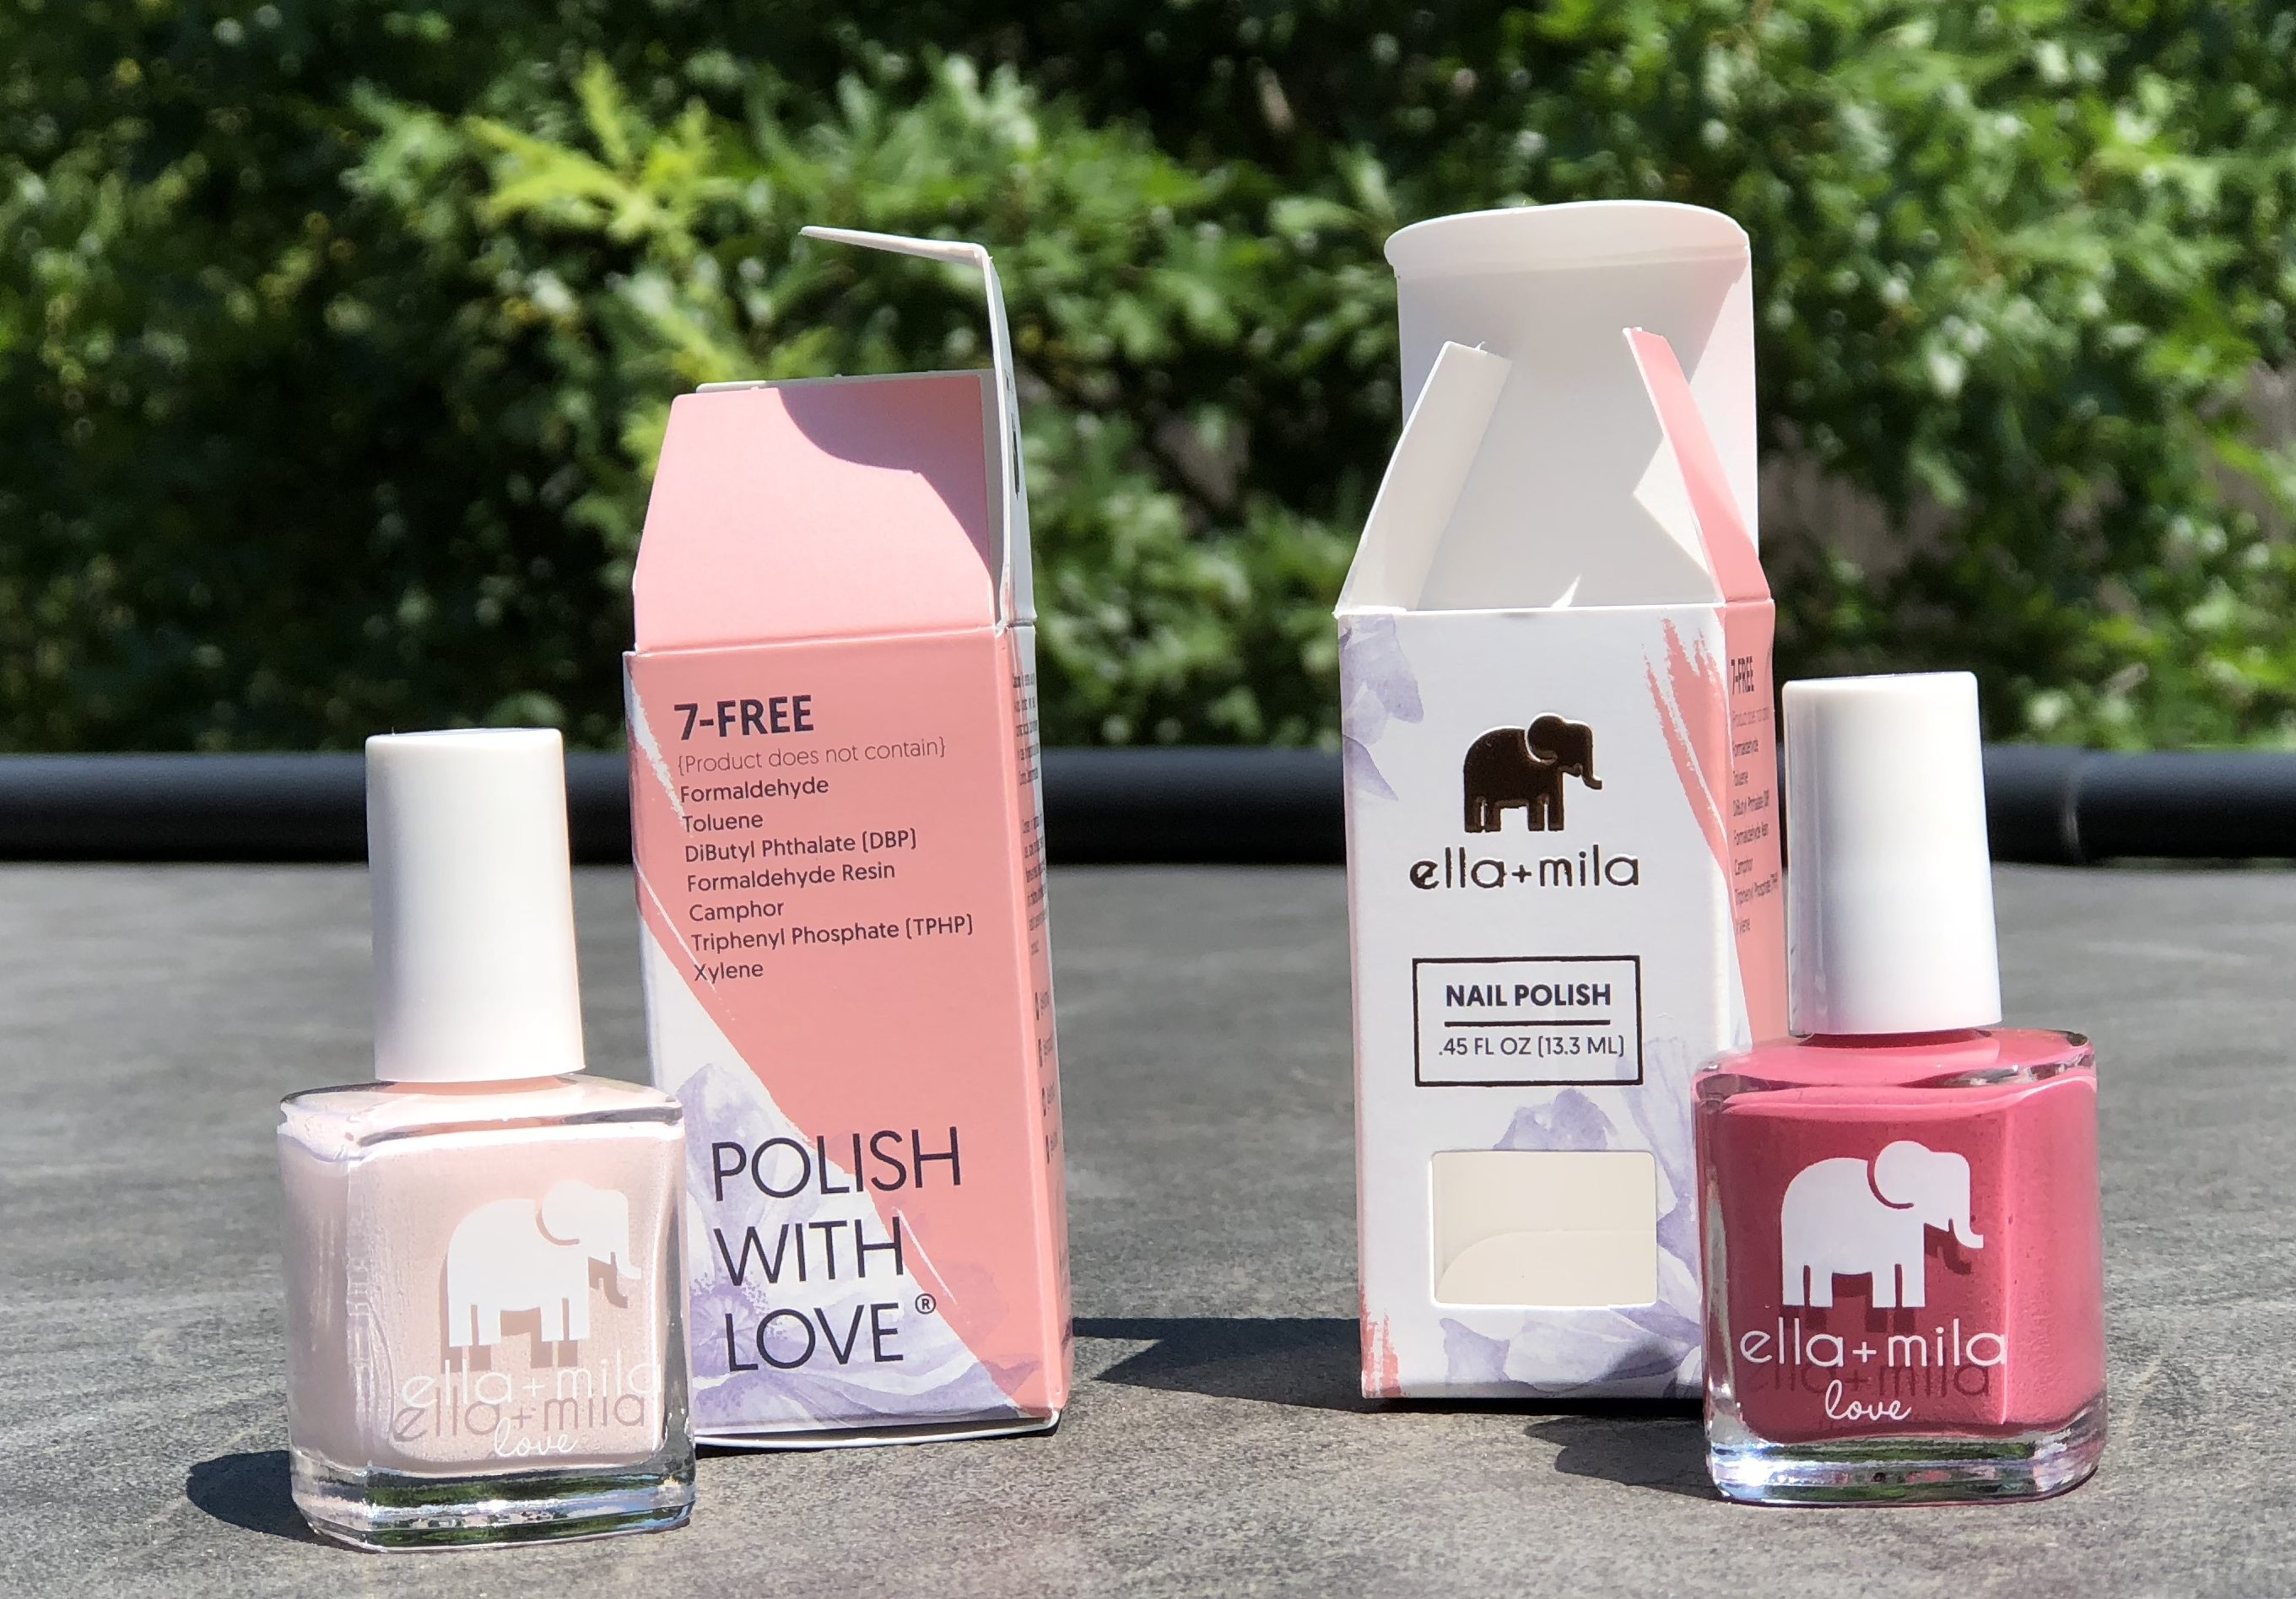 Ella+Mila promo codes are available on holiday nail sets – two bottles of nail polish next to their boxes